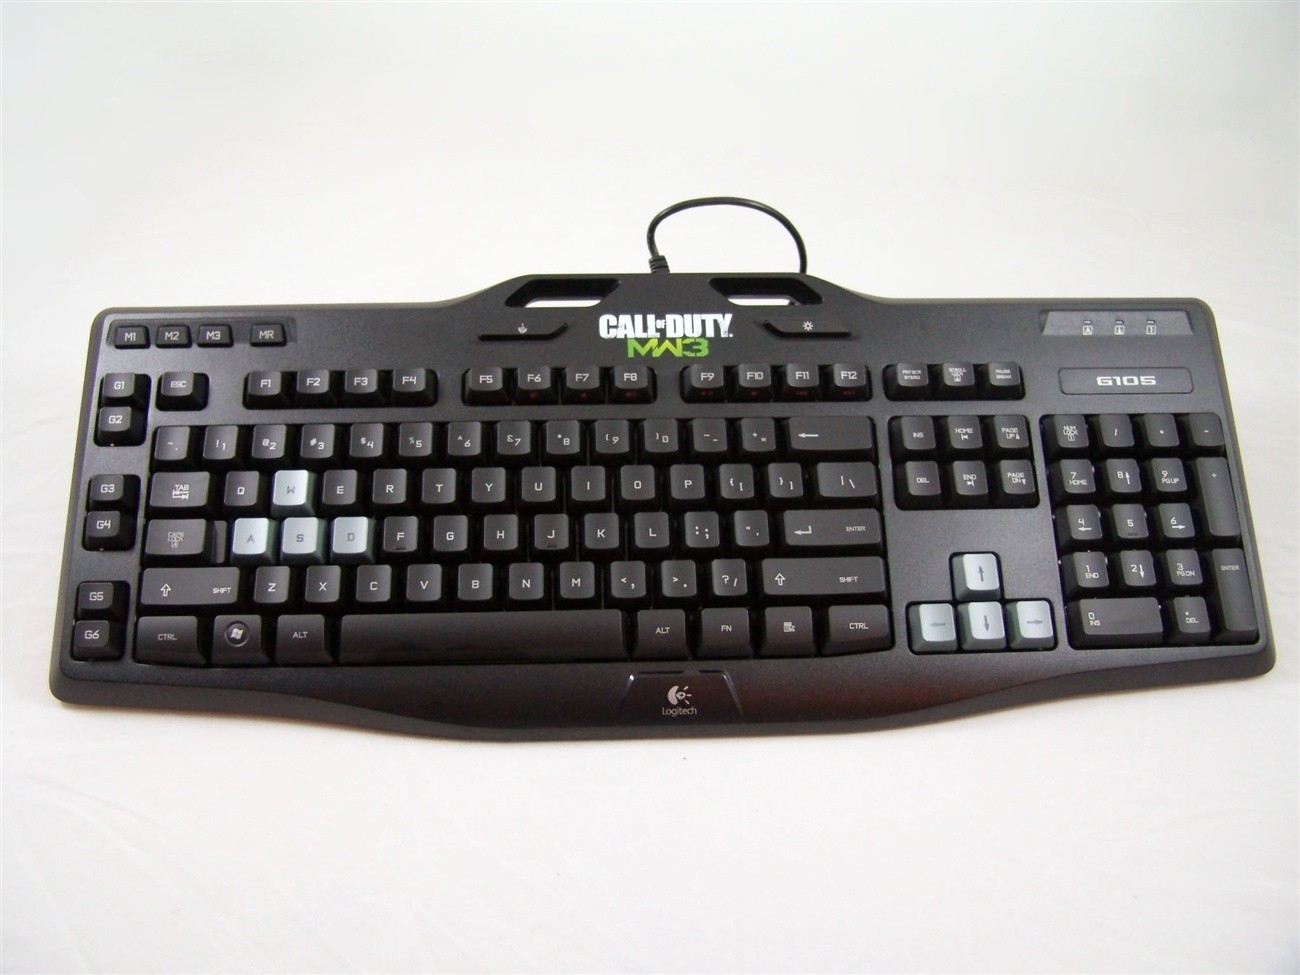 logitech_g105_made_for_call_of_duty_gaming_keyboard_review